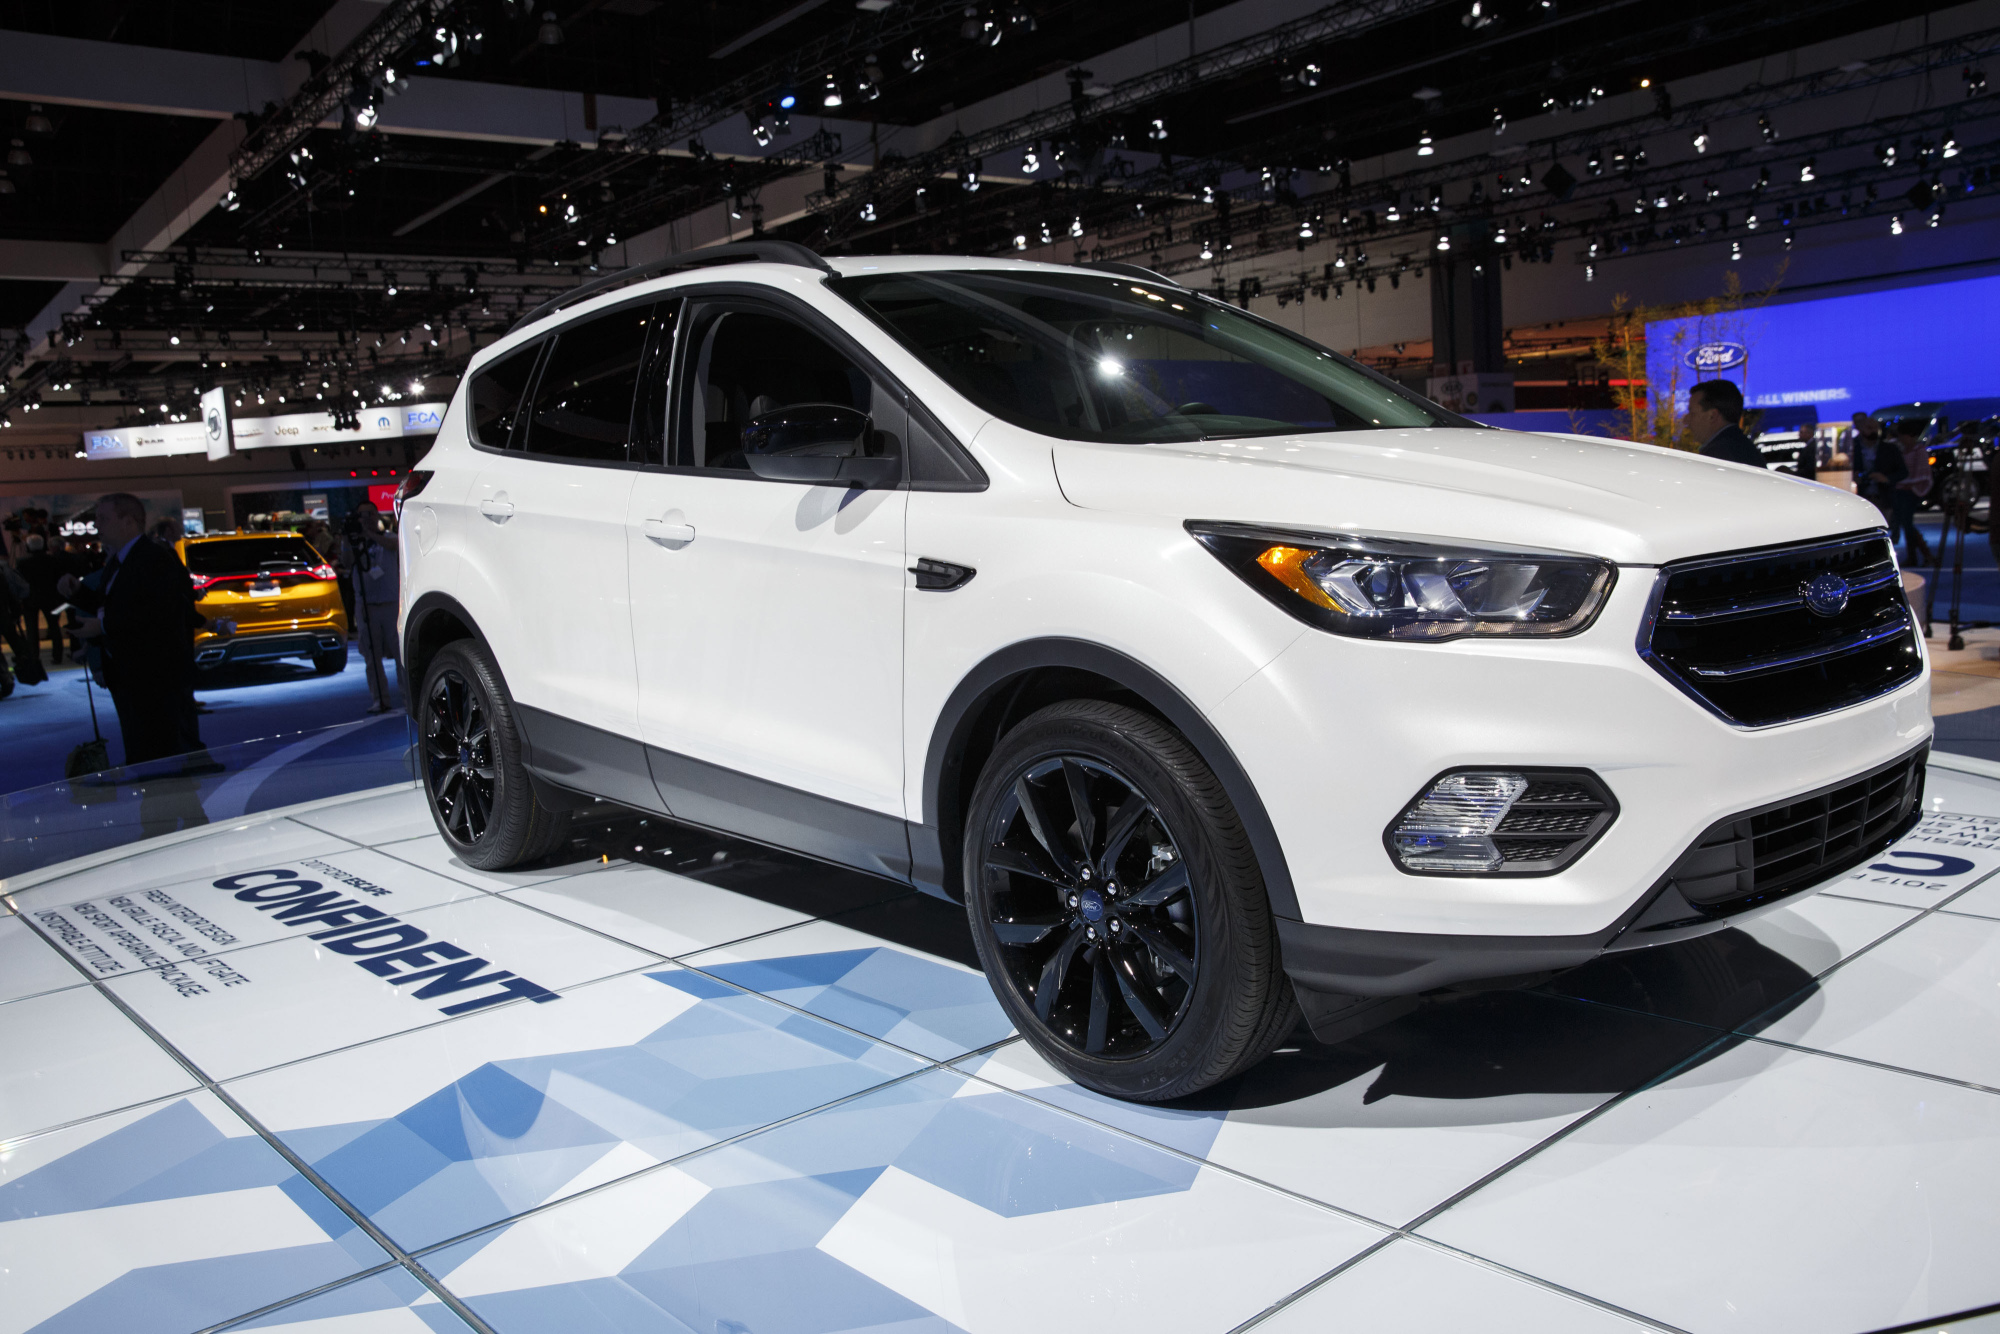 news is this suv mustang might ford render s like what look based electric suvs